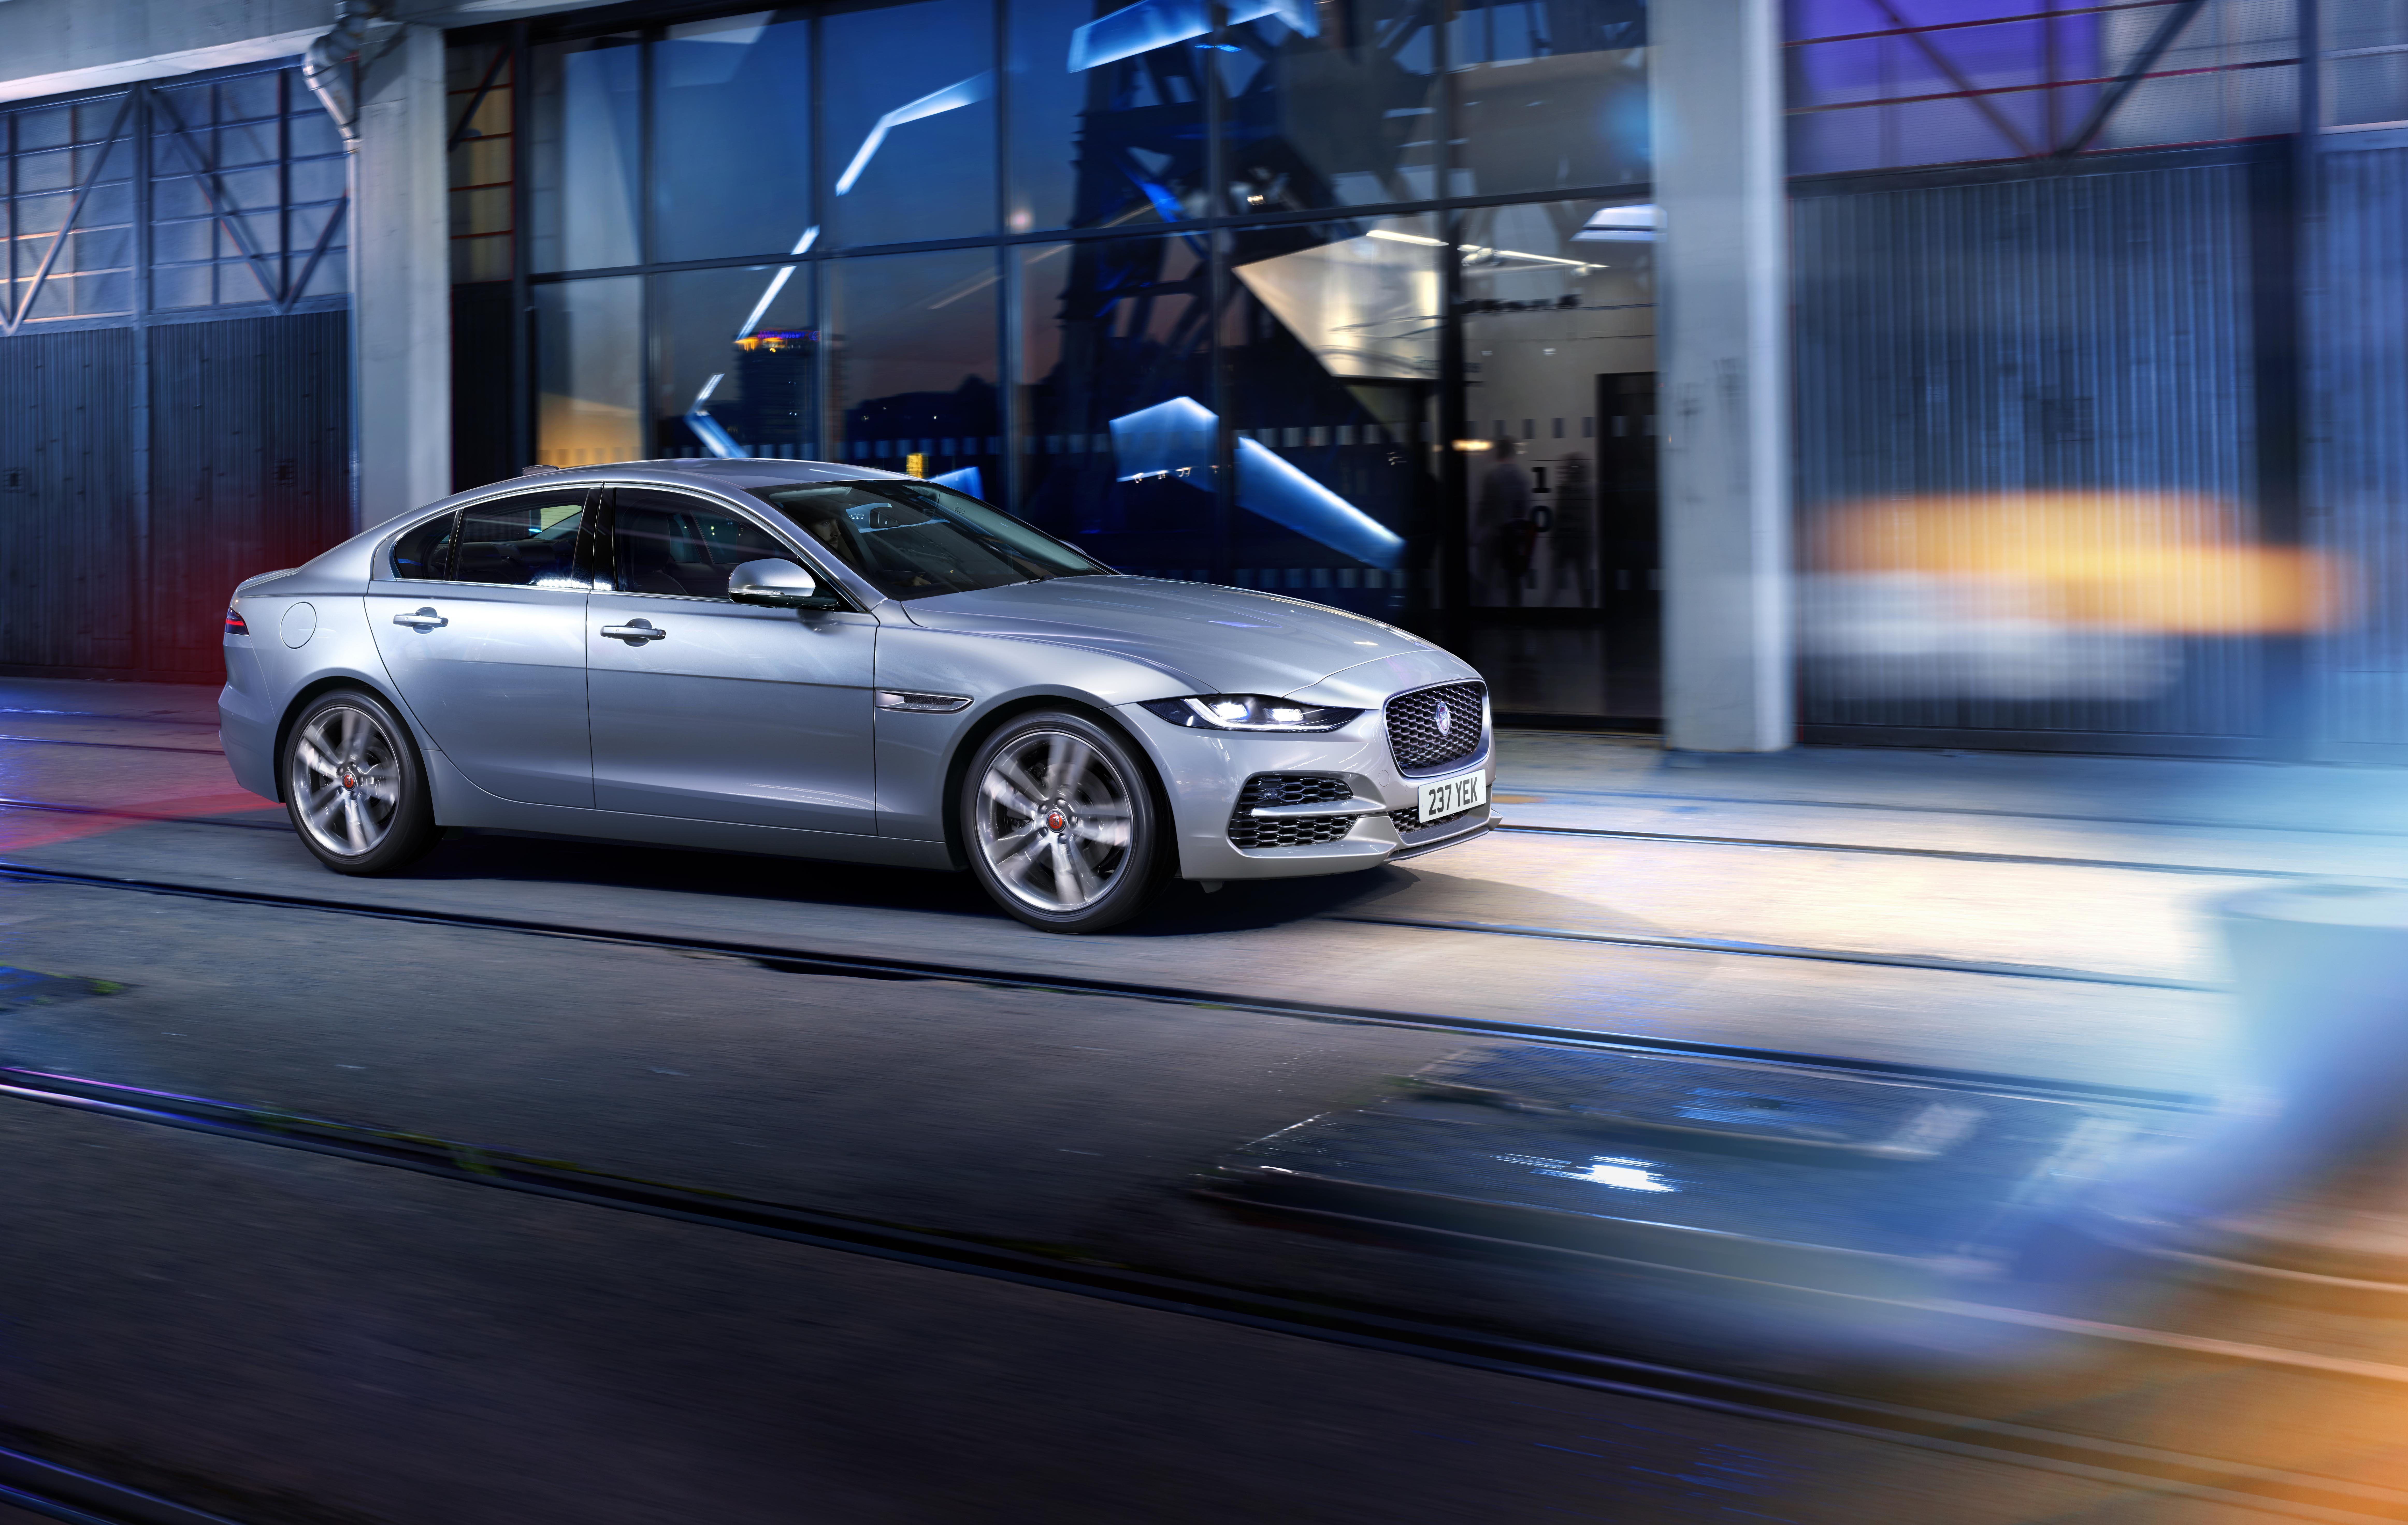 """<p>When <a href=""""https://www.caranddriver.com/jaguar/xe"""" rel=""""nofollow noopener"""" target=""""_blank"""" data-ylk=""""slk:the Jaguar XE"""" class=""""link rapid-noclick-resp"""">the Jaguar XE</a> was first released in 2014, it was a totally fresh entry in the competitive entry-luxury sports sedan segment. But it didn't hit the U.S. market until late 2016, and it took a while for the XE's engine lineup to get fully fleshed out. Since then, major competitors like the BMW 3-series, Mercedes-Benz C-class, and Volvo S60 have either received complete redesigns or major refreshes, pushing the XE toward the middle of the class. Now, the XE has been given a comprehensive list of enhancements for 2020, bringing the car more in line with the competition in terms of technology and fresh styling.</p>"""